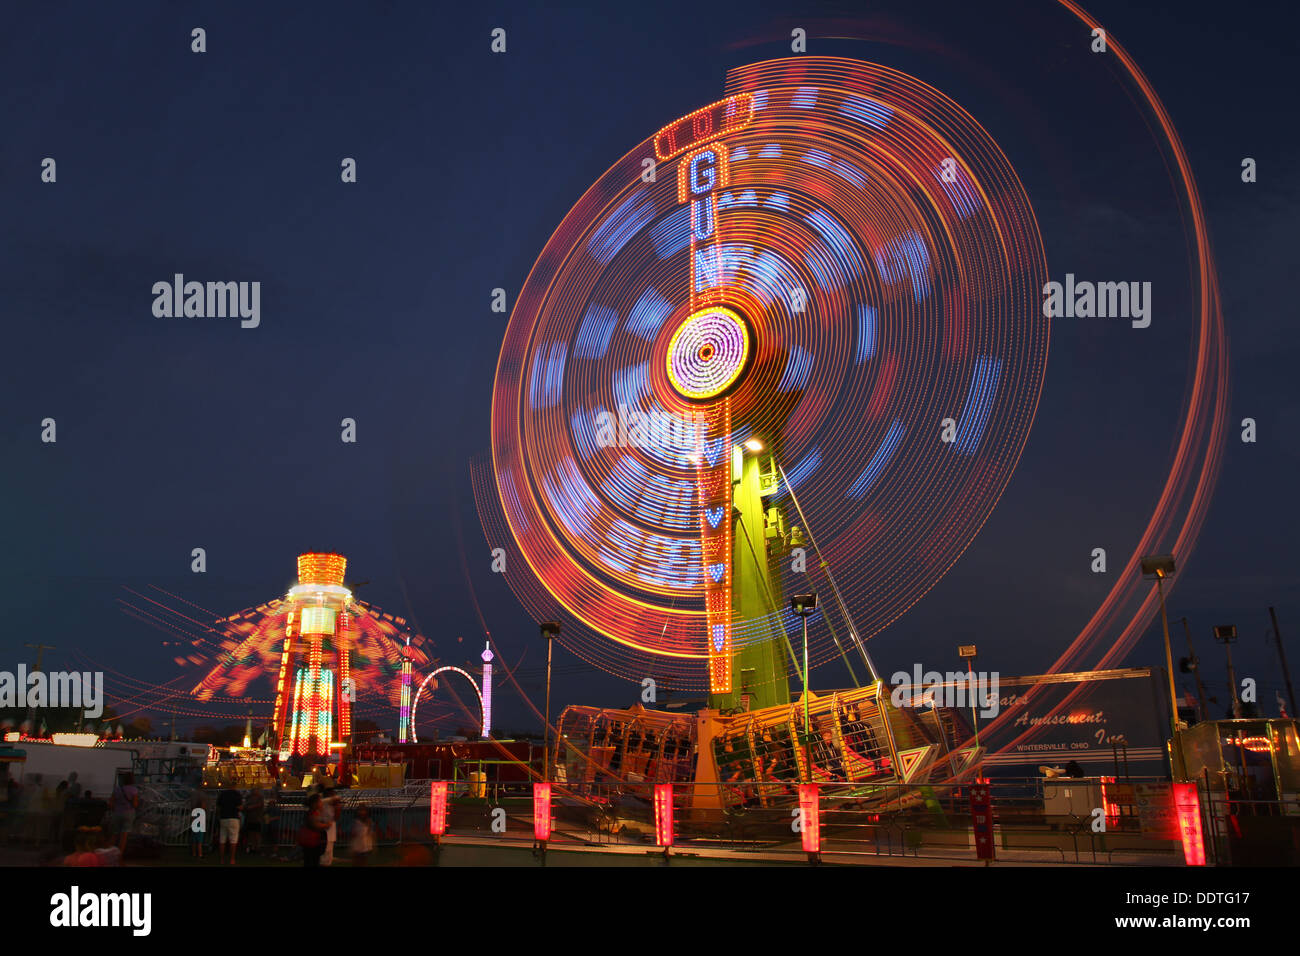 top-gun-amusement-ride-at-night-canfield